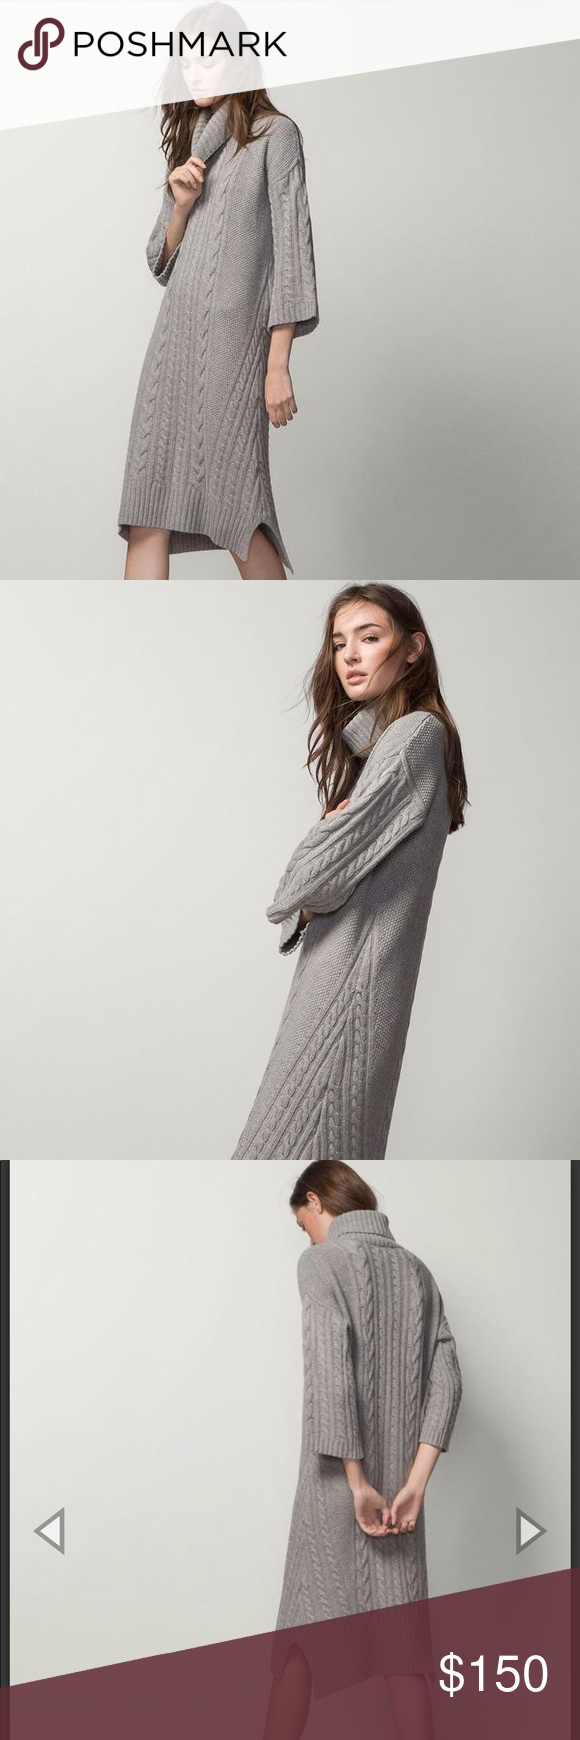 f26242efeb NWT Massimo Dutti Italian Yarn Sweater Dress Stunning warm gray cowl neck  turtleneck sweater dress in Knitted yarn Massimo Dutti Dresses Long Sleeve